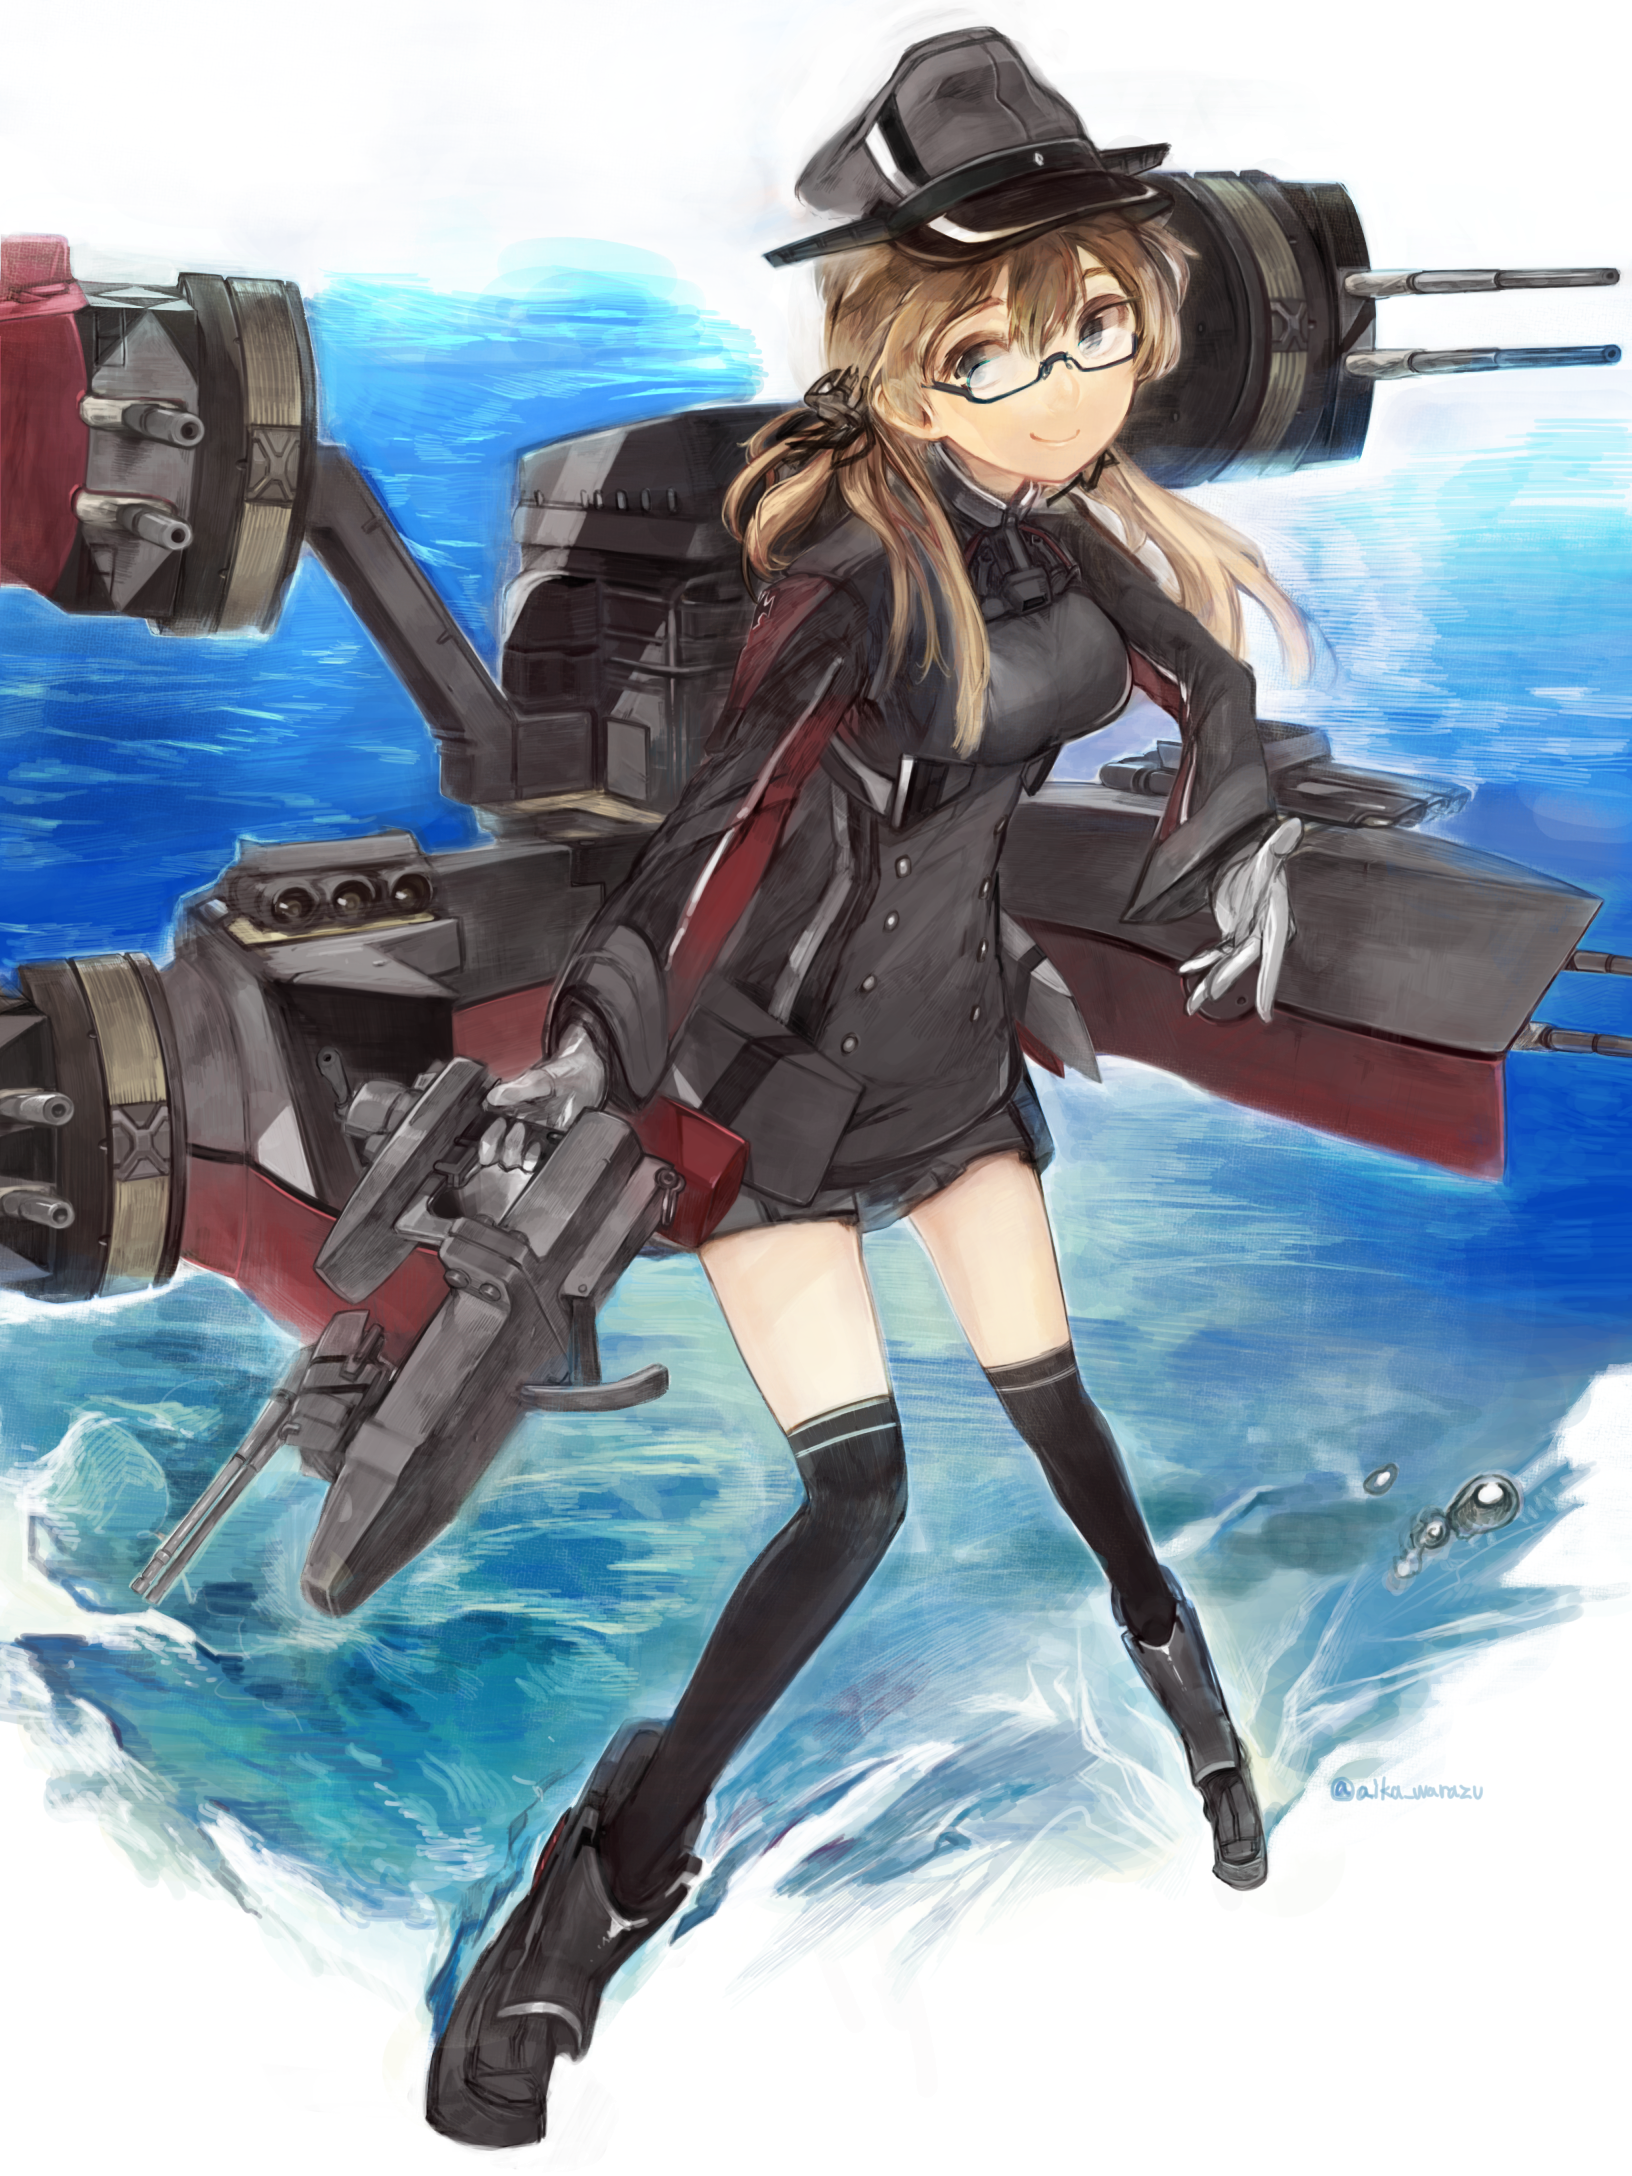 anime_wallpaper_Kantai_Collection_6079196-47291884_p0.png